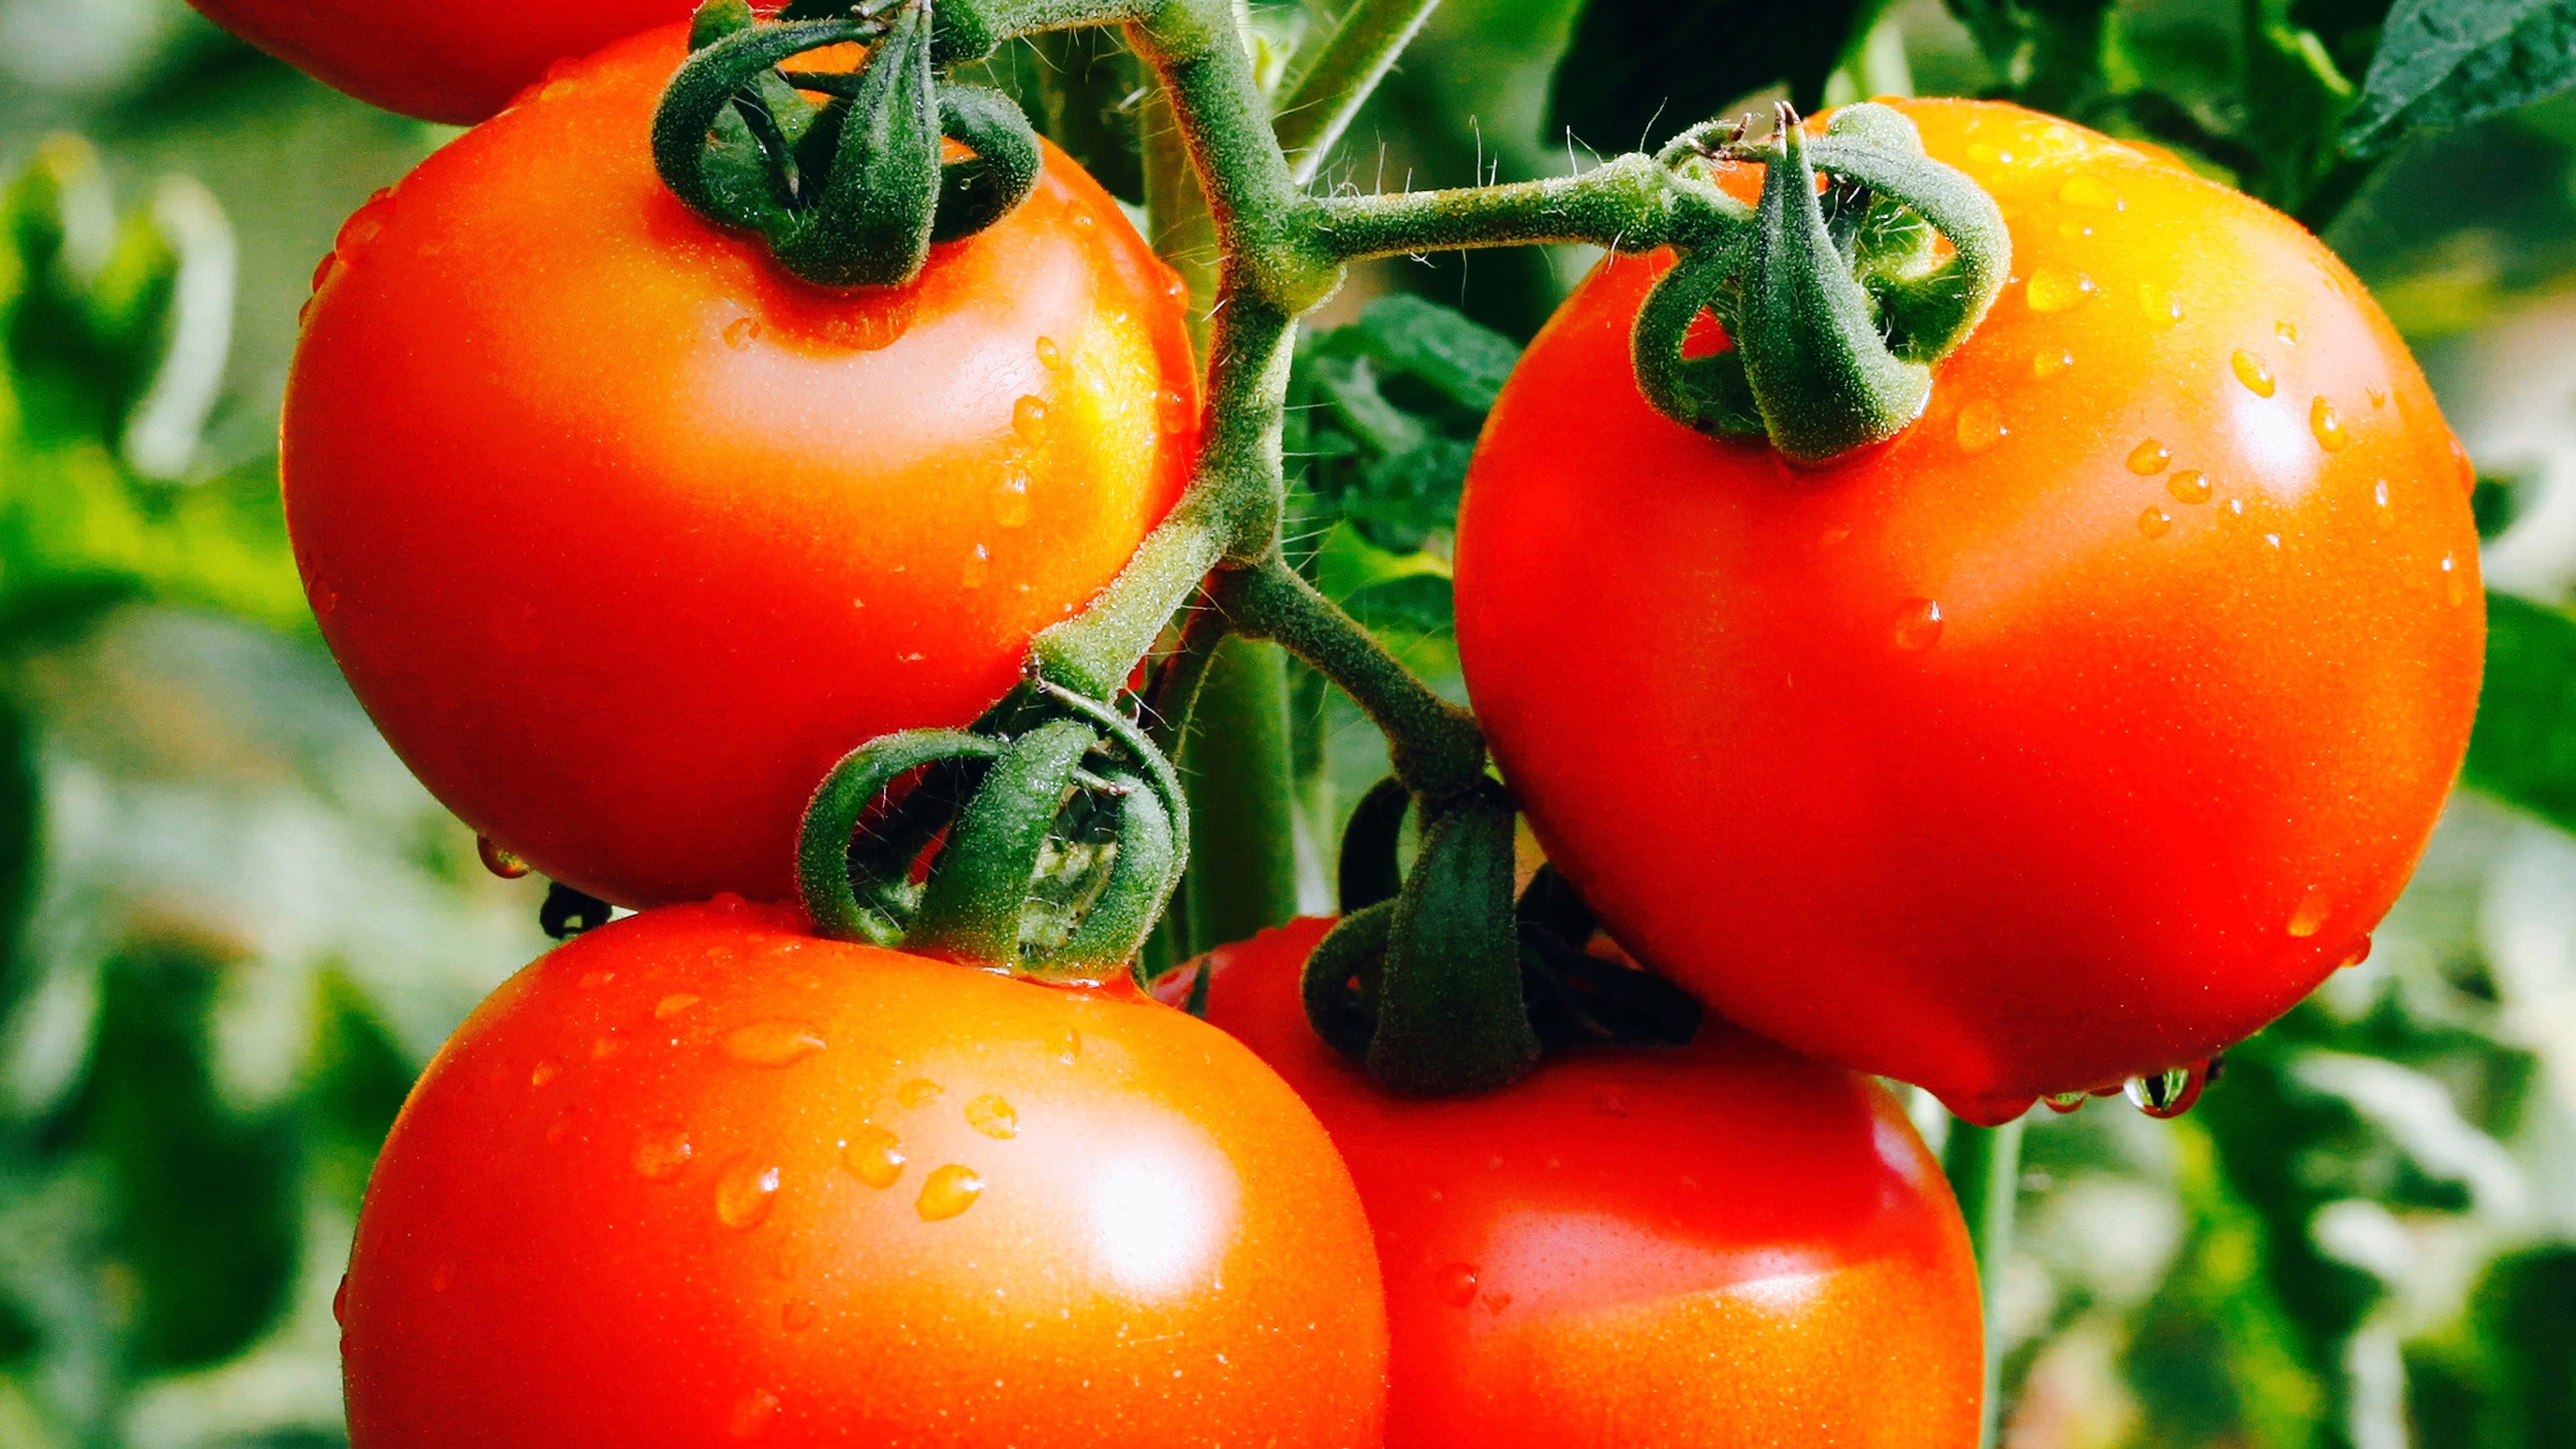 Tomatoes on the vine.